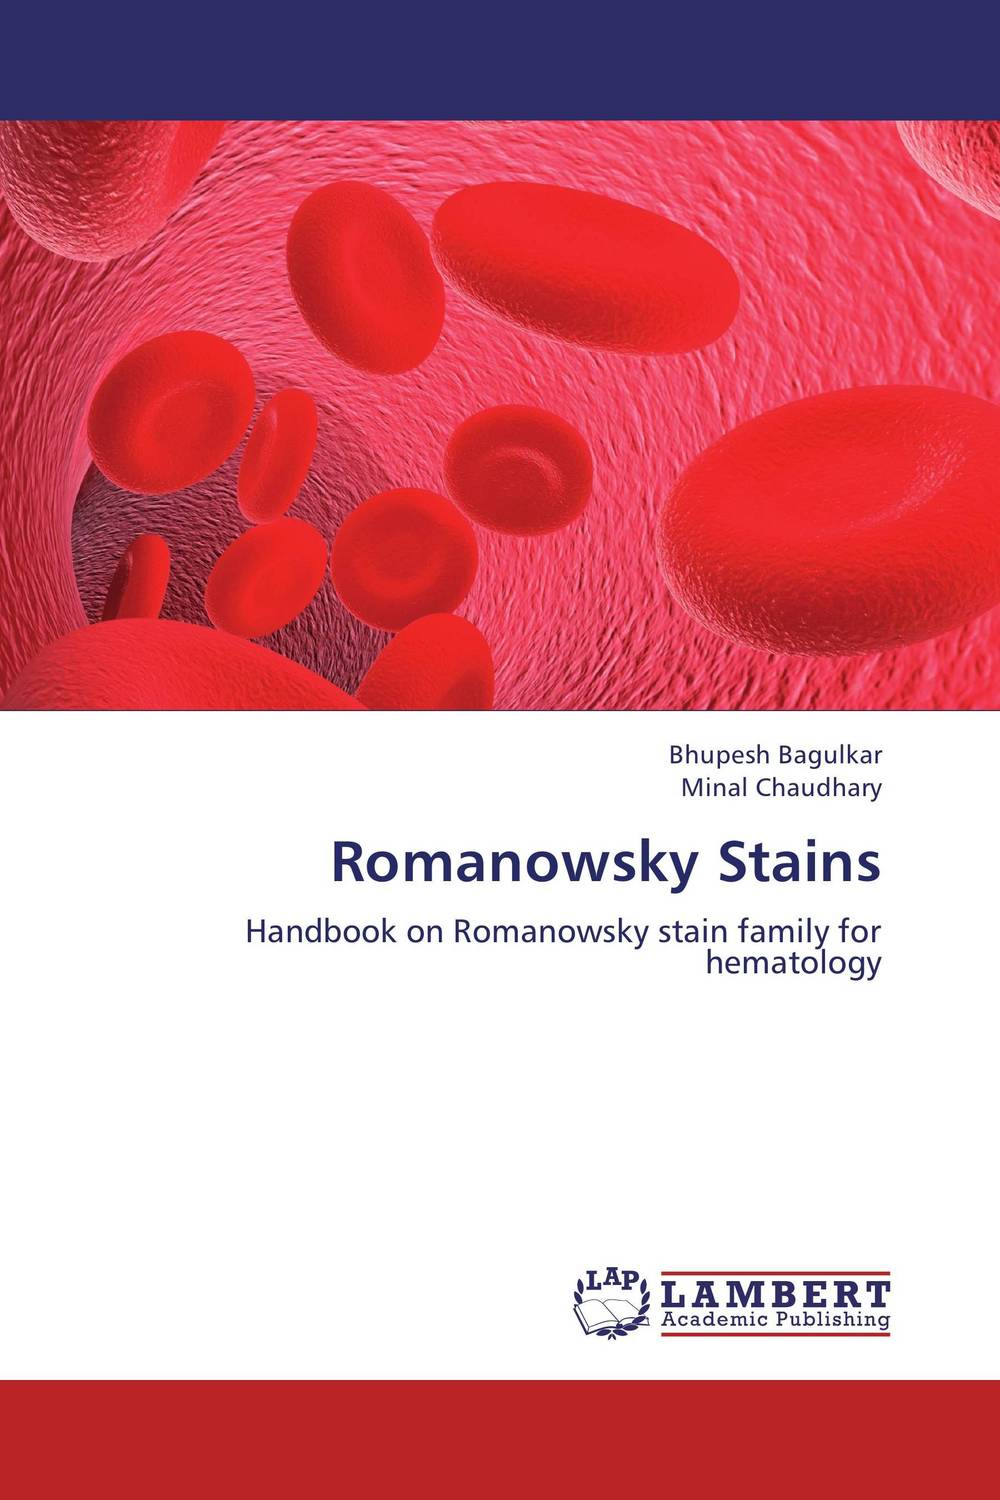 Romanowsky Stains nupur agarwal and puneet gupta role of vital staining in diagnosis oral cancers